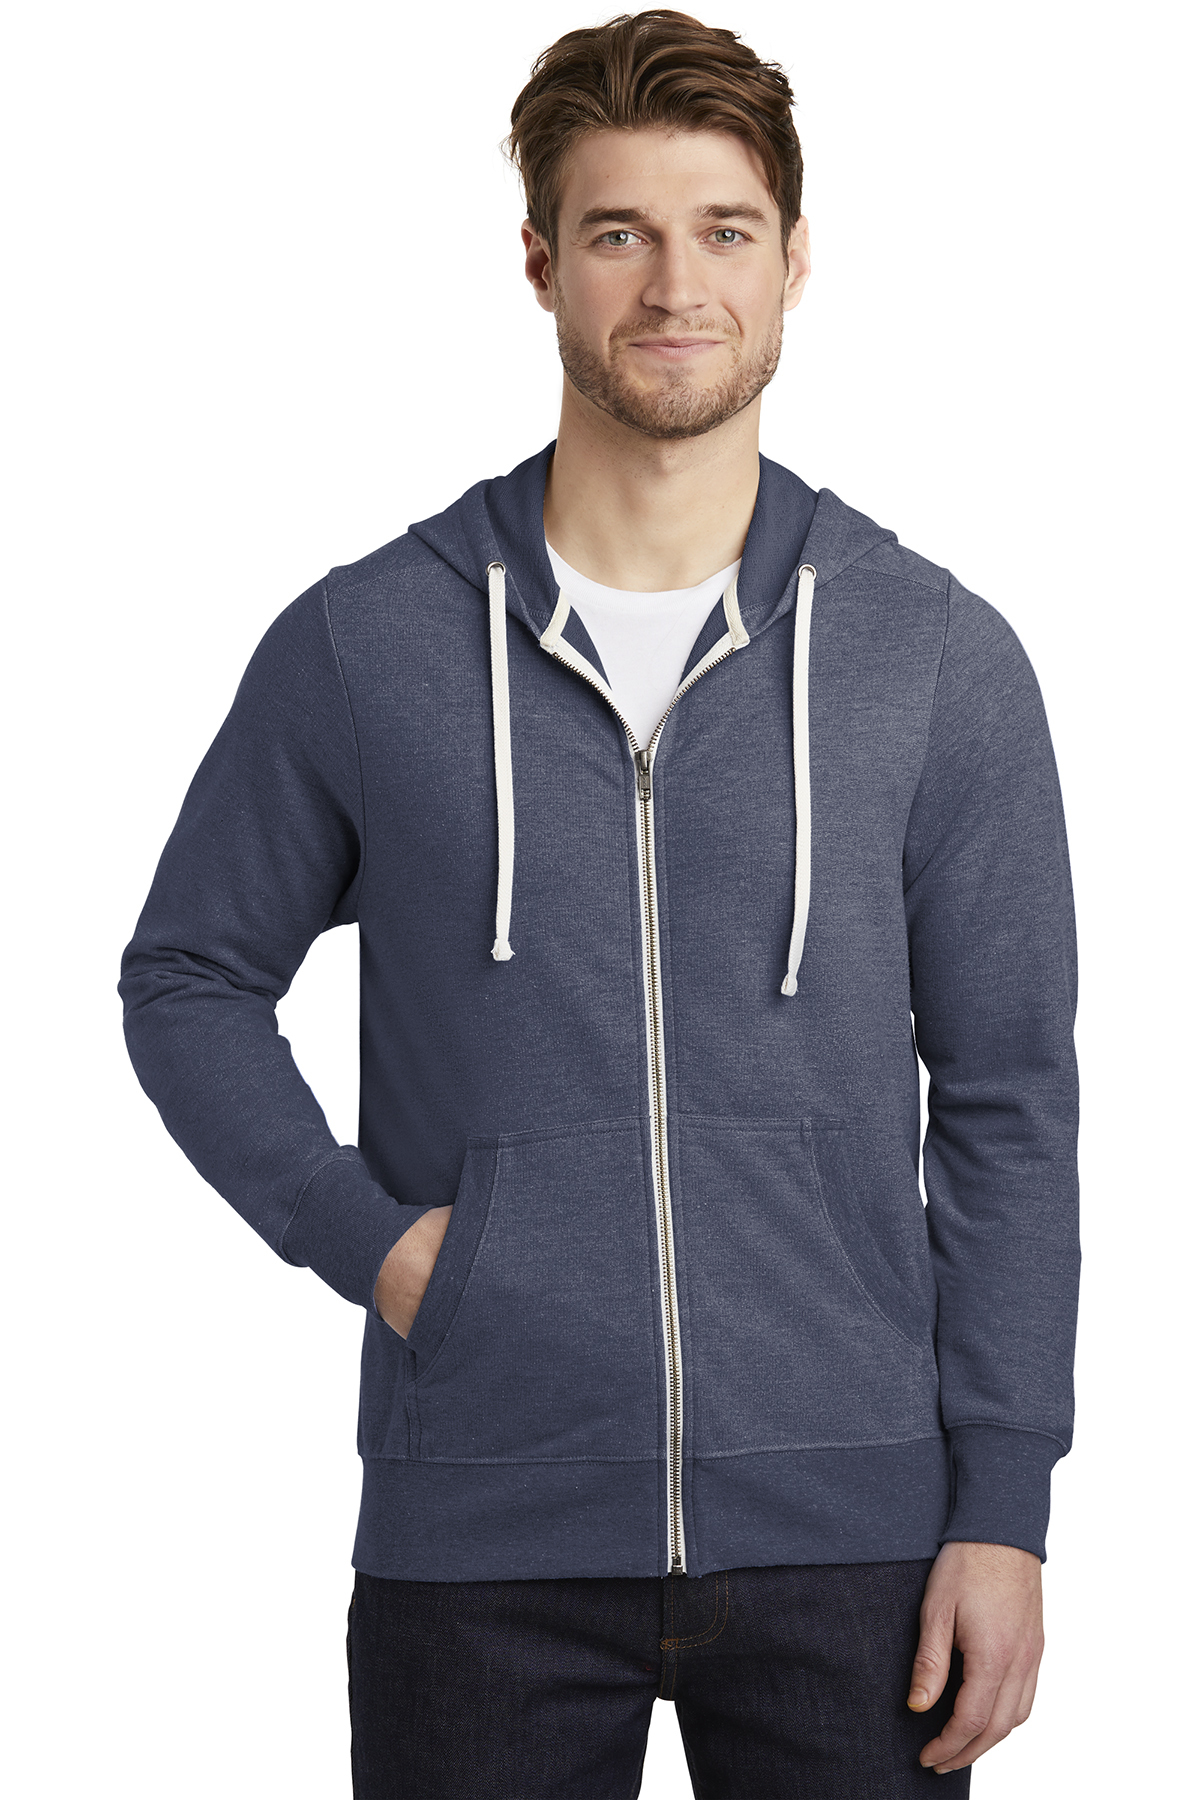 District DT356 - Men's Perfect Tri French Terry Full-Zip Hoodie